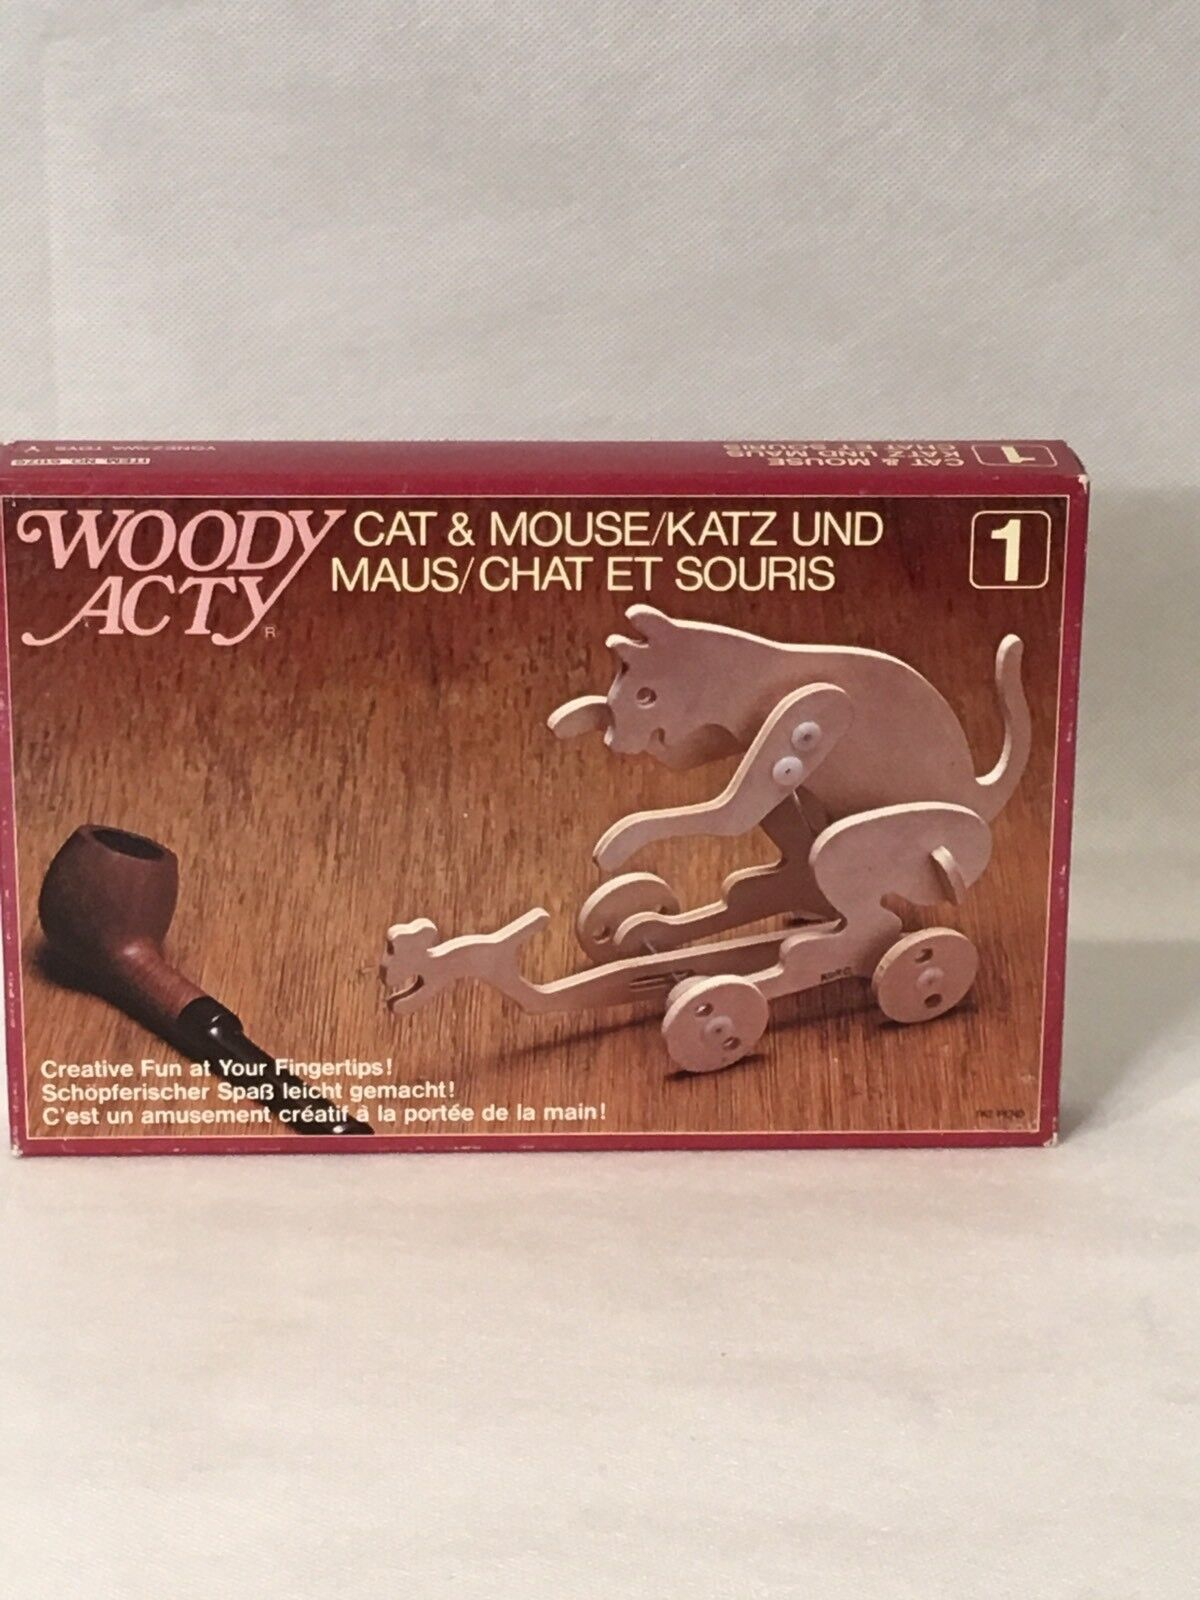 Woody Acty Cat Cat Cat & Mouse Designed By Kohsuke Kuroda Made In Japan e197d9